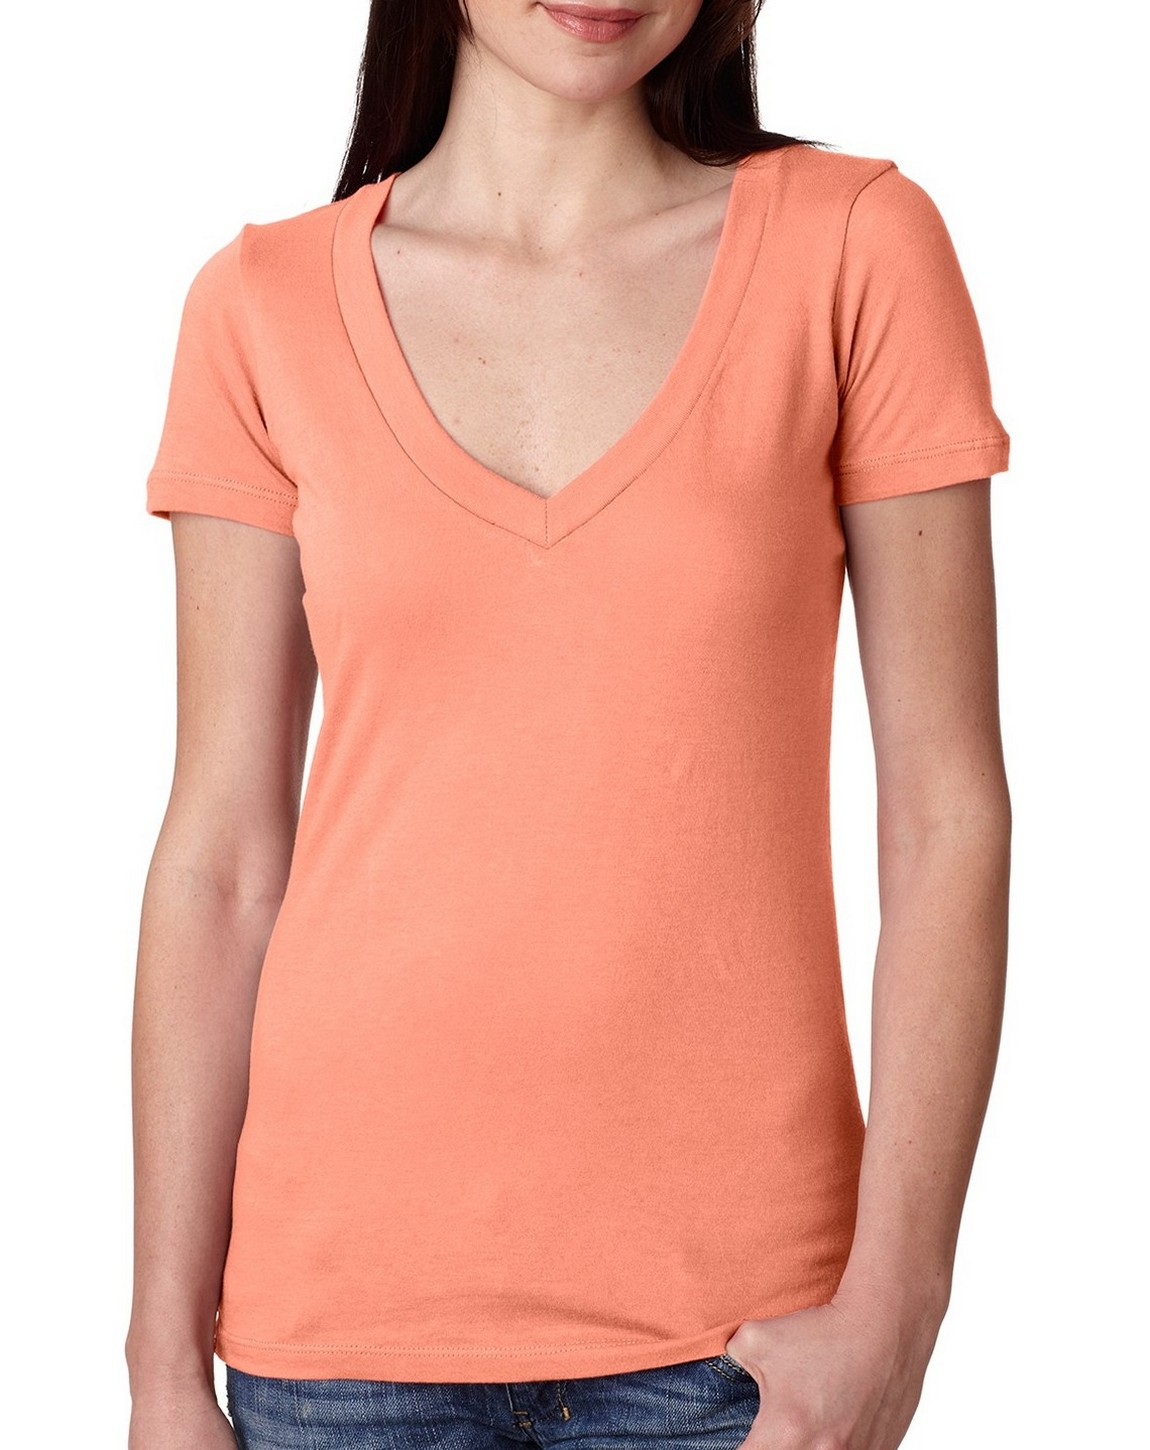 Next level 3540 ladies deep v neck tee for Next level homes